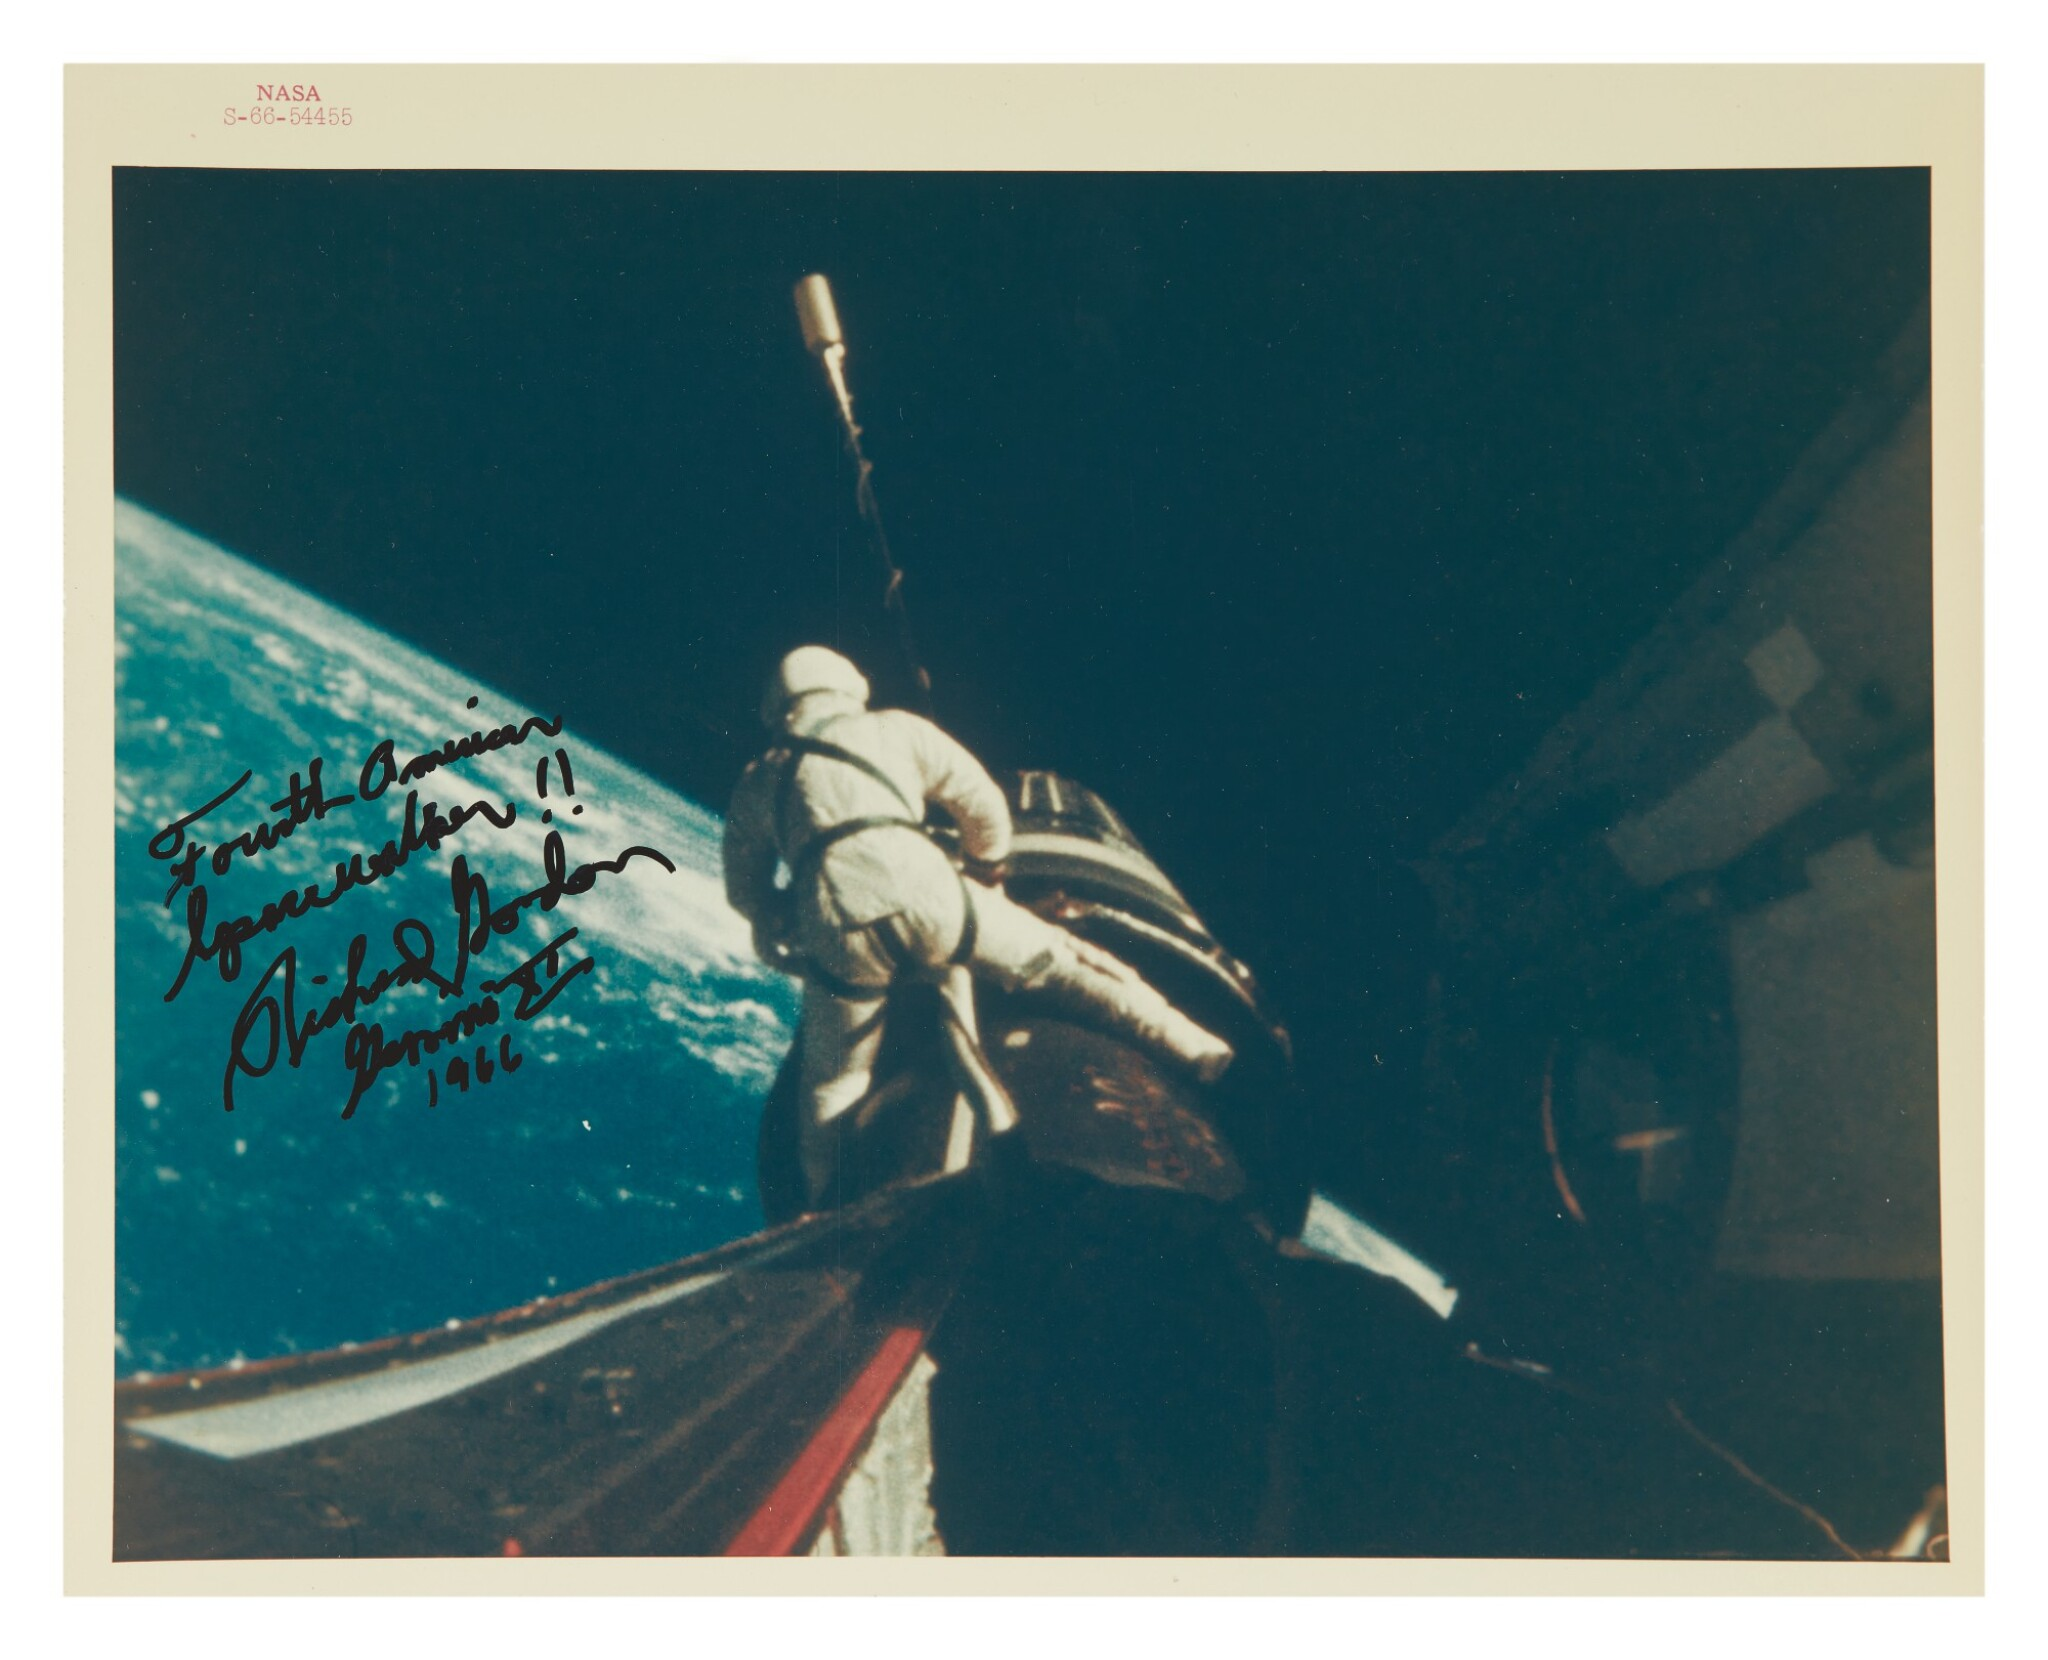 "View 1 of Lot 53. [GEMINI XI] SPACE COWBOY, INSCRIBED BY DICK GORDON. VINTAGE NASA ""RED NUMBER"" PHOTOGRAPH, 13 SEPTEMBER 1966.."